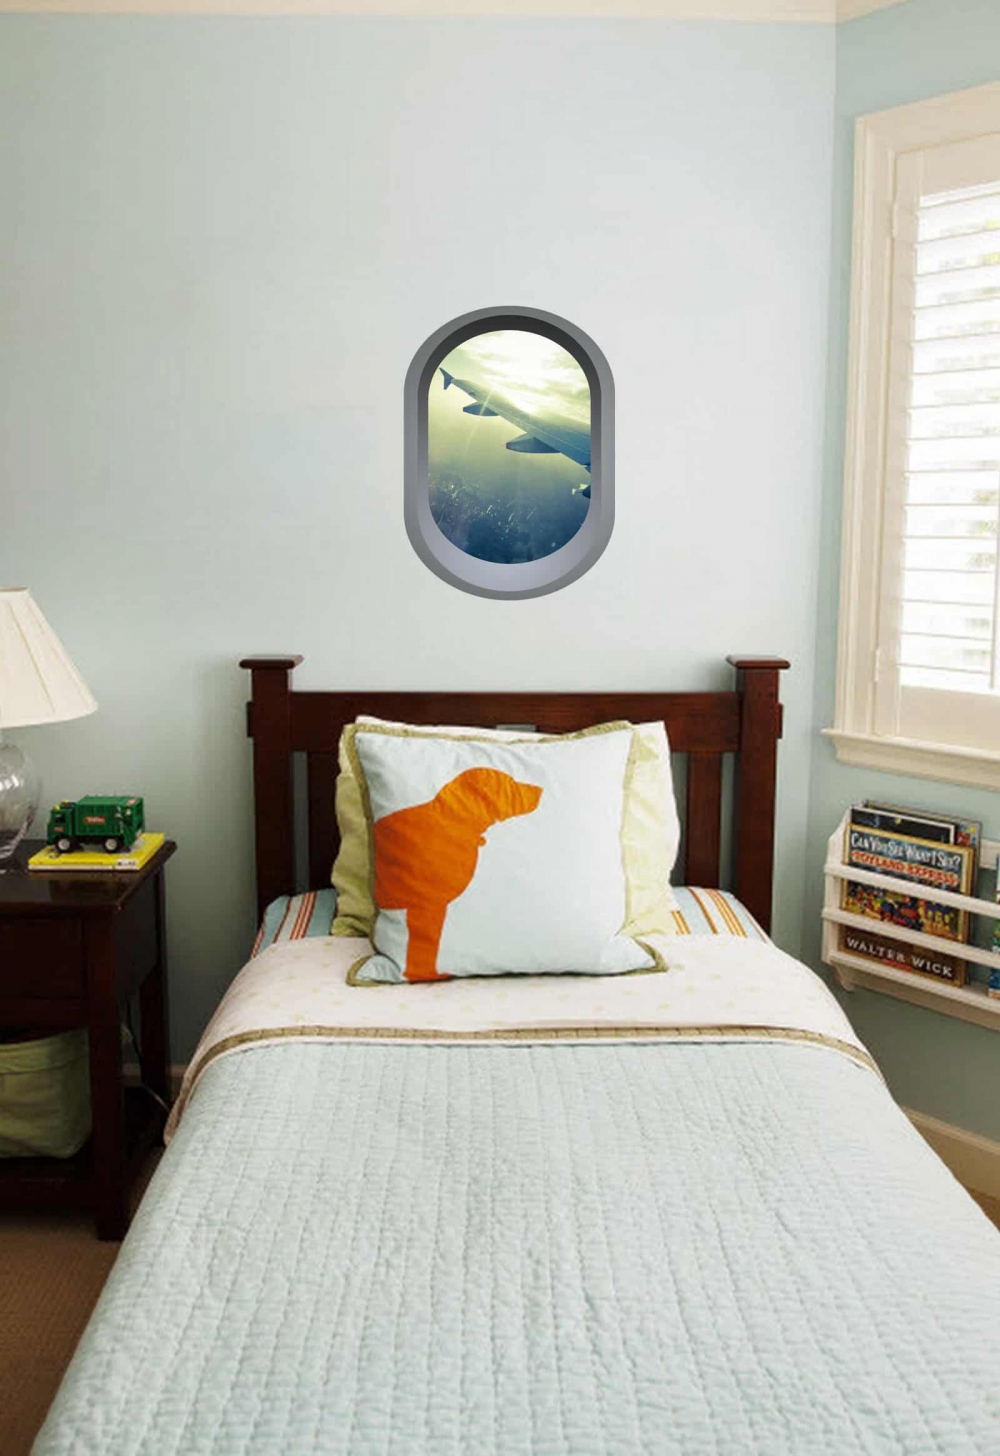 Aeroplane window illusion Bedroom sticker